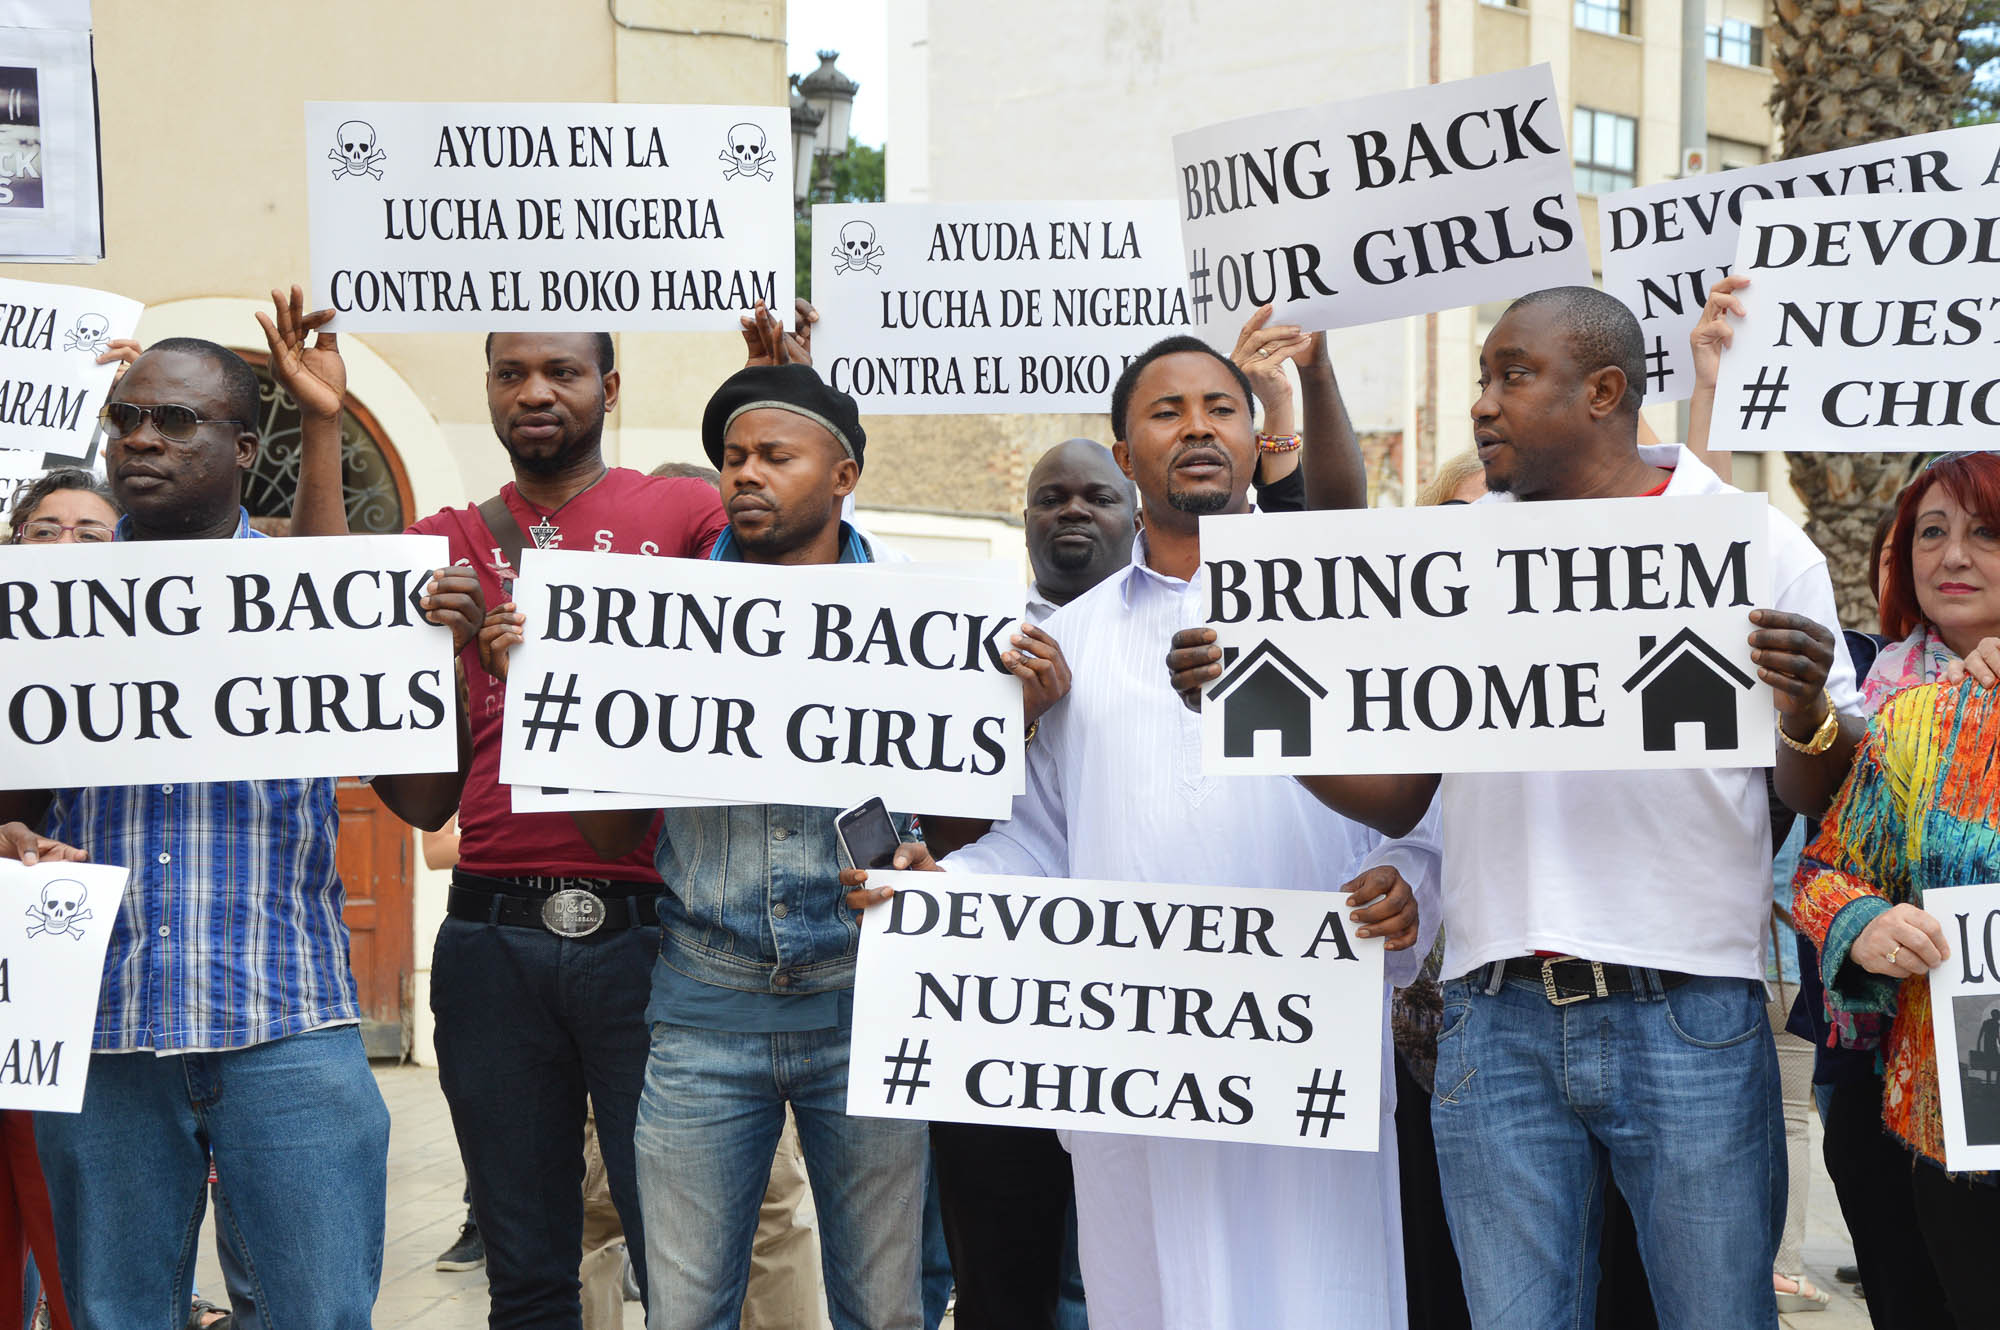 Association of Nigerians protest with locals against Boko Haram actions that claimed responsibility for abducting over 200 girls from a school in Chibok, Nigeria. Spain, 2014. Editorial credit: rSnapshotPhotos / Shutterstock.com.